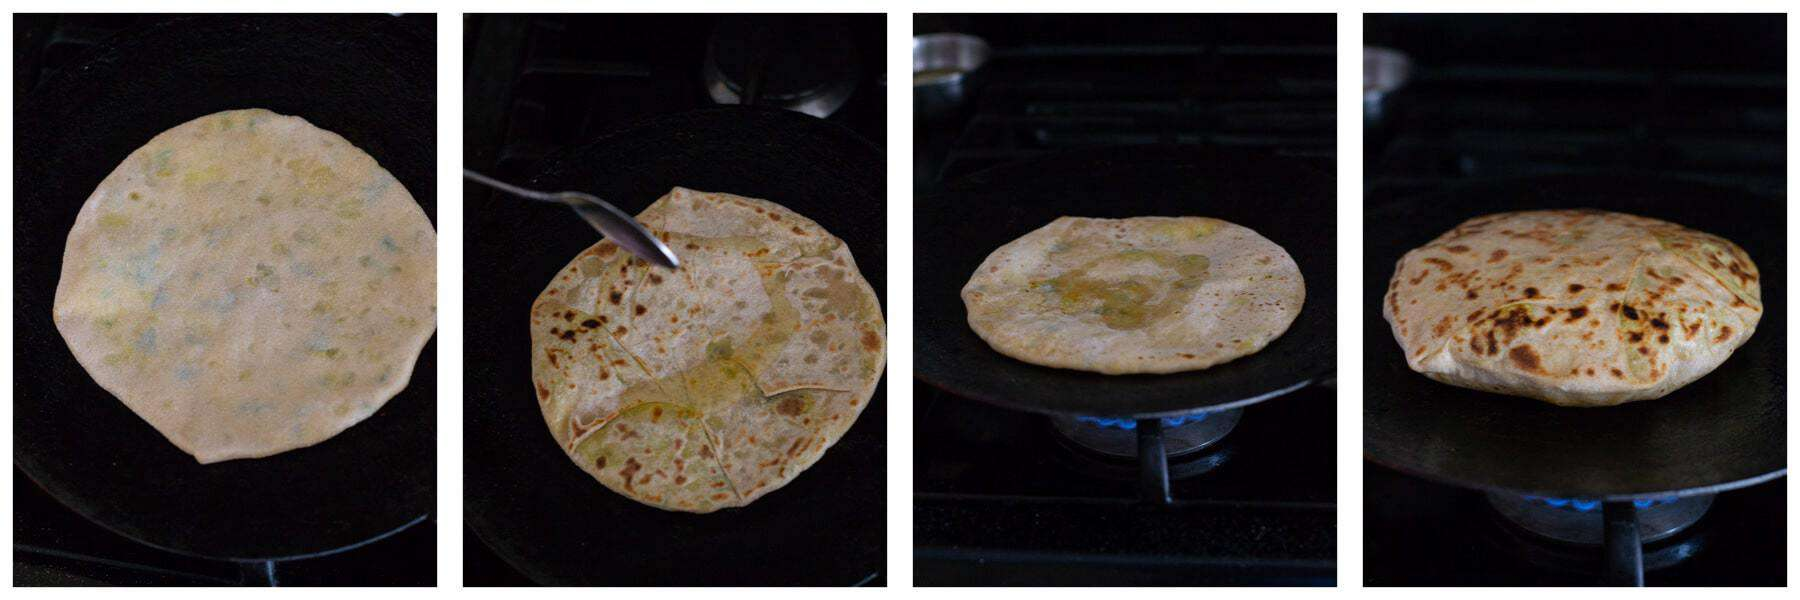 Displays Aloo paratha's cooking process